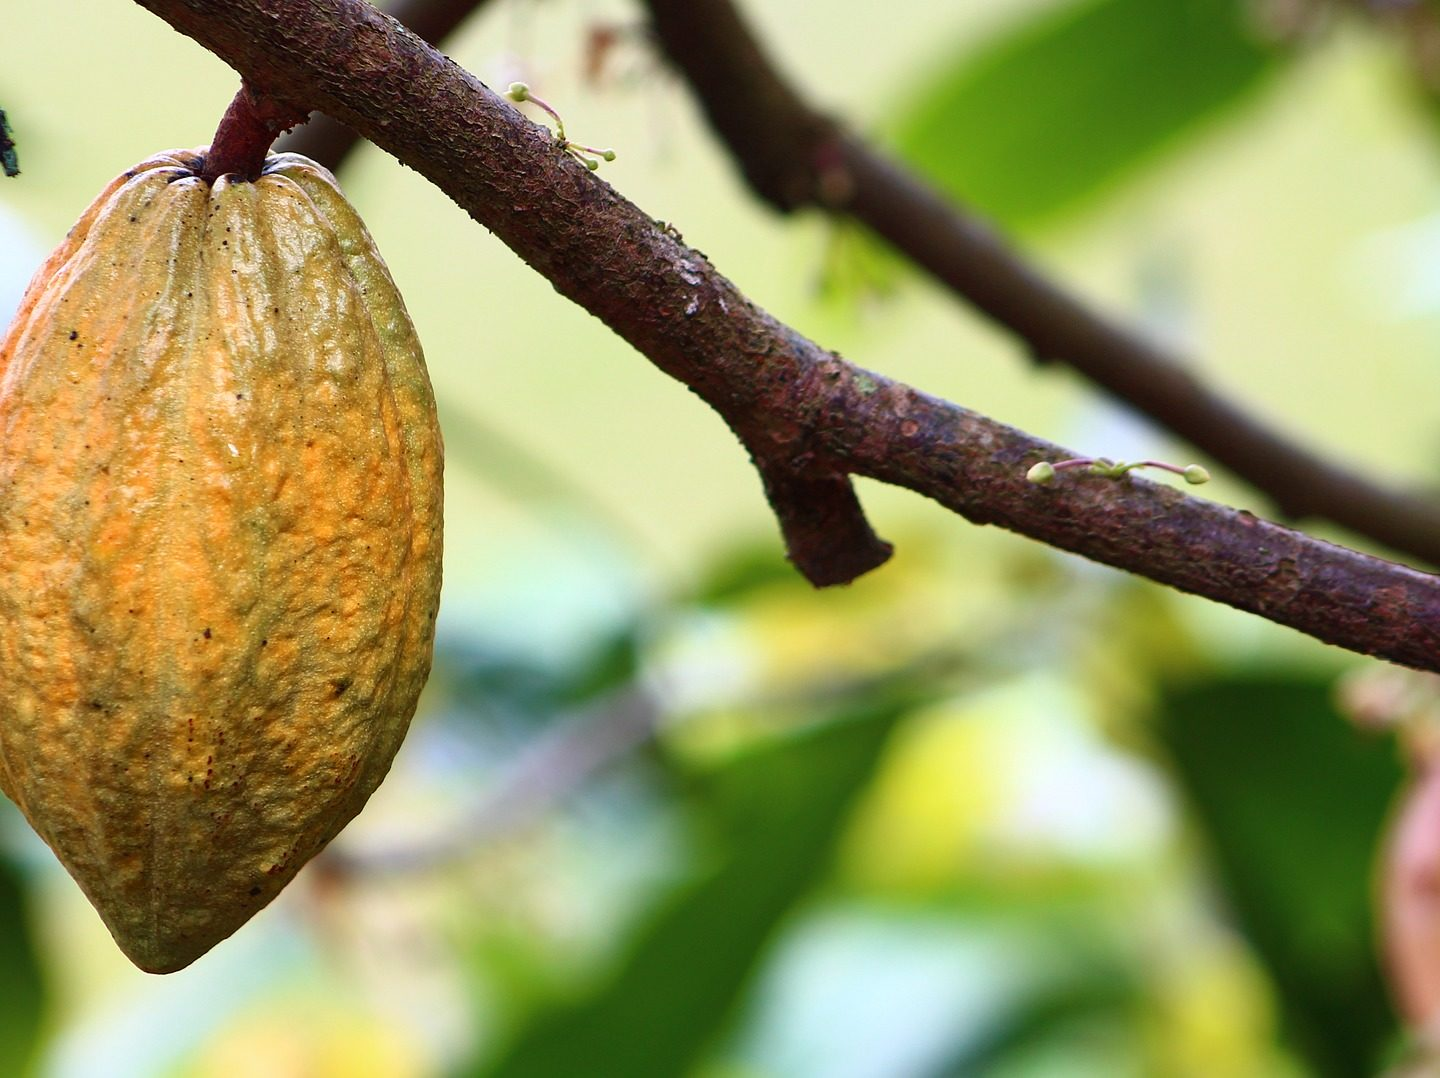 Gene editing shows promise for improving the 'chocolate tree'